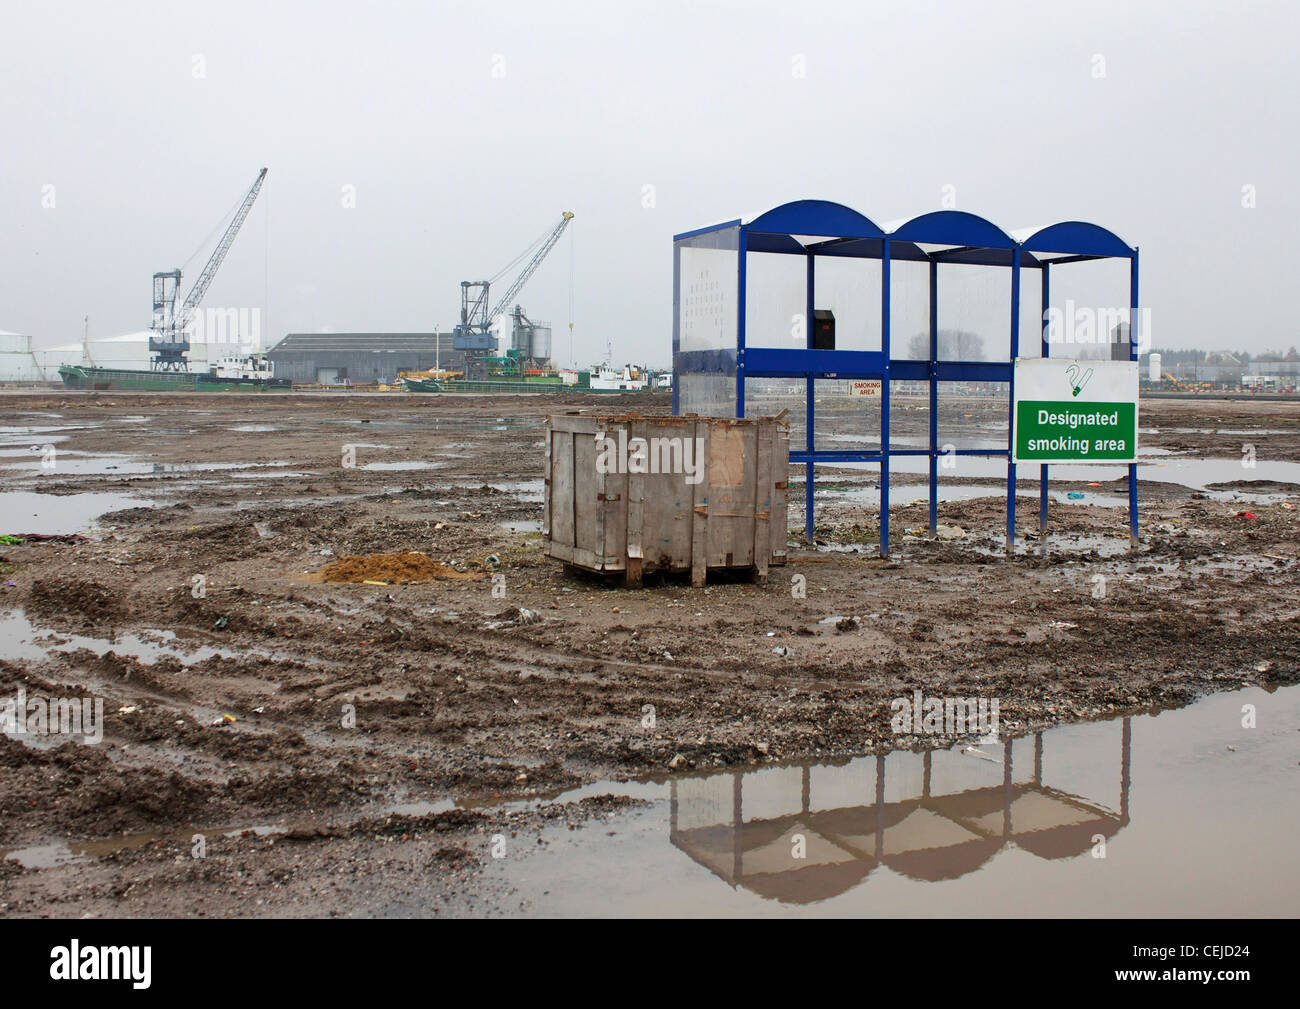 Smokers' shelter standing alone in a wasteland of mud and pools of water, Trafford Park, Manchester, England - Stock Image